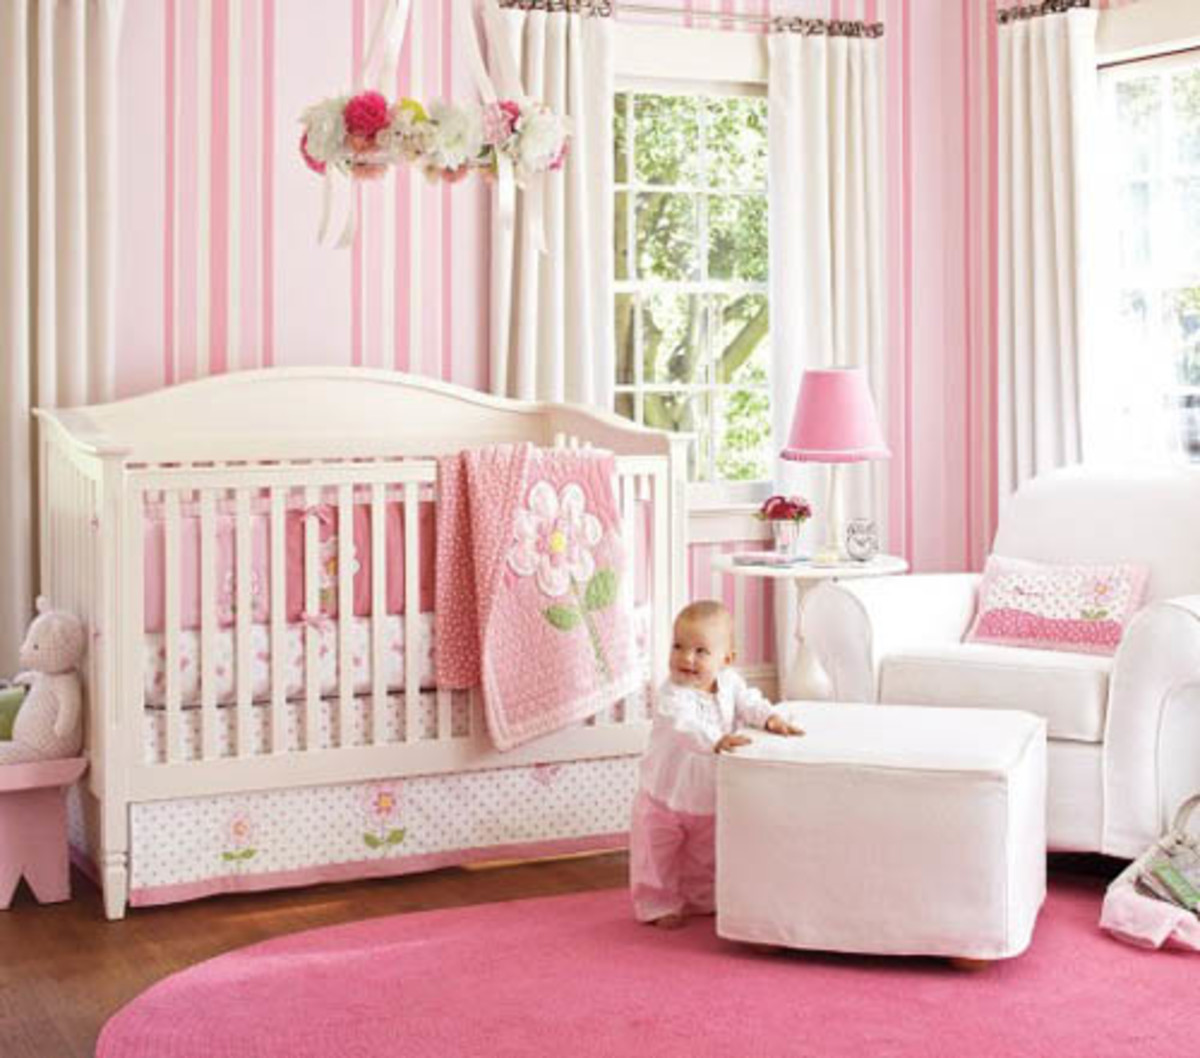 striped pink wallpaper in babies nursery